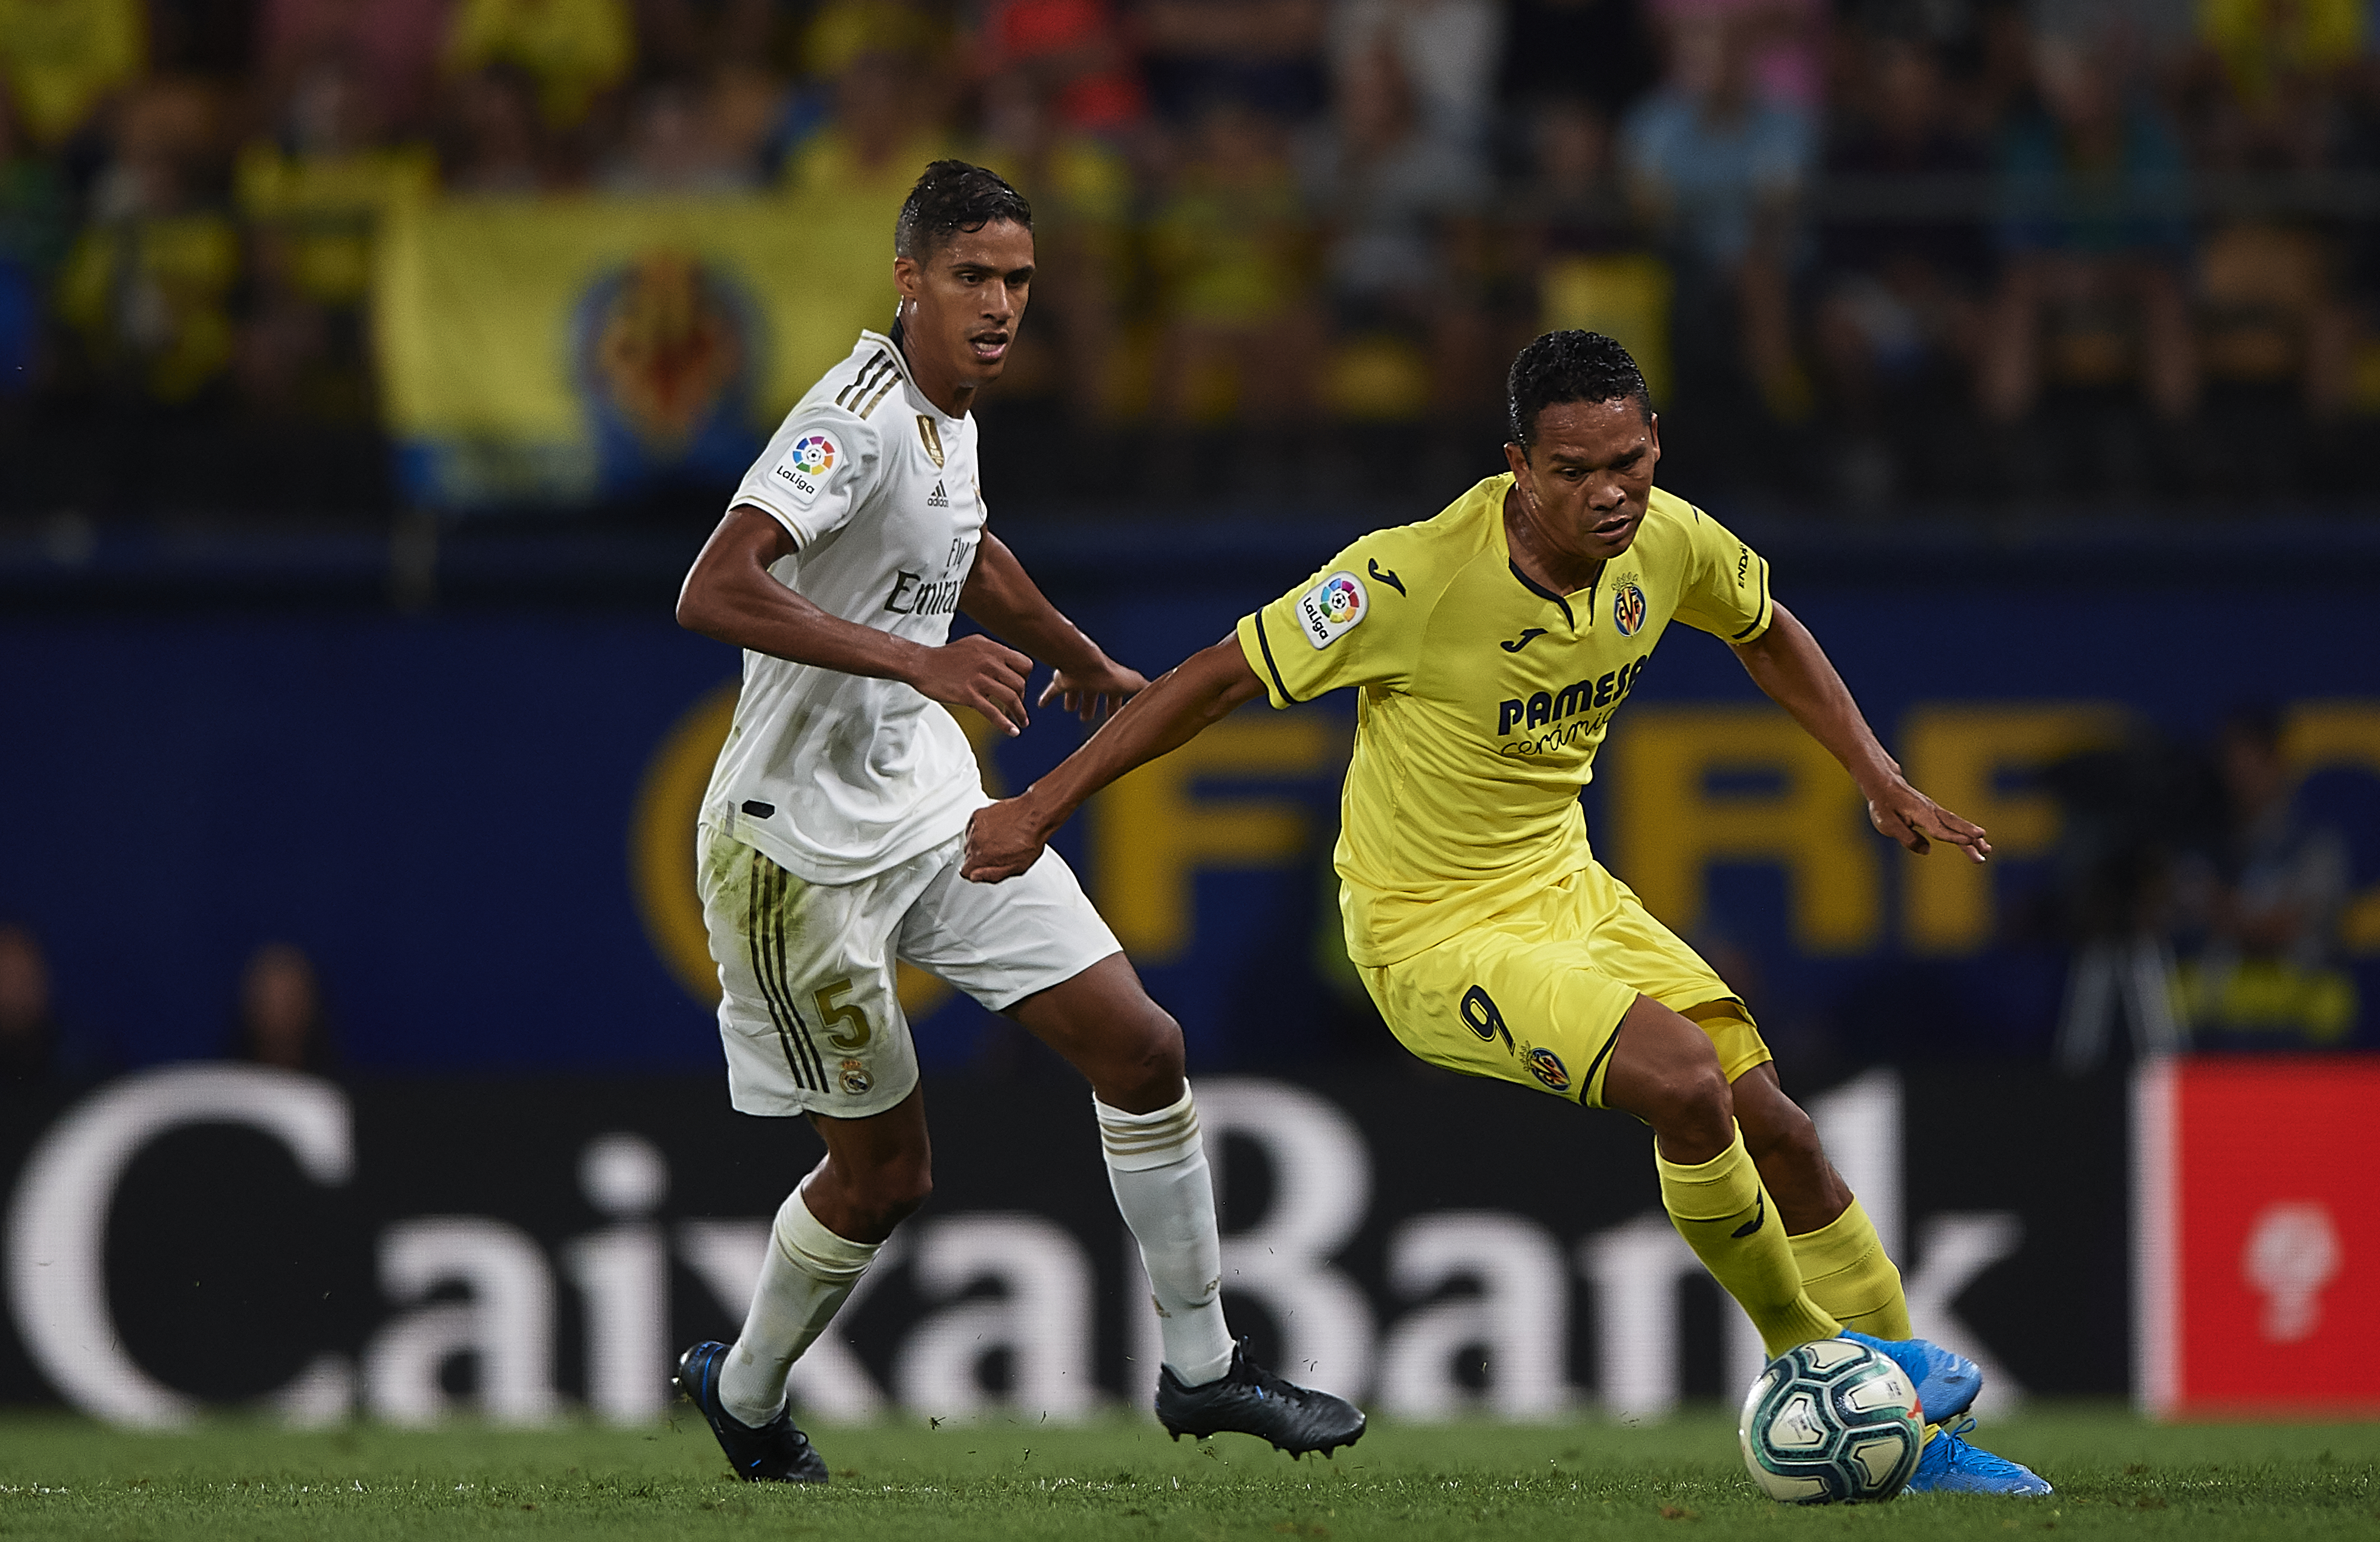 Villarreal CF v Real Madrid CF - La Liga